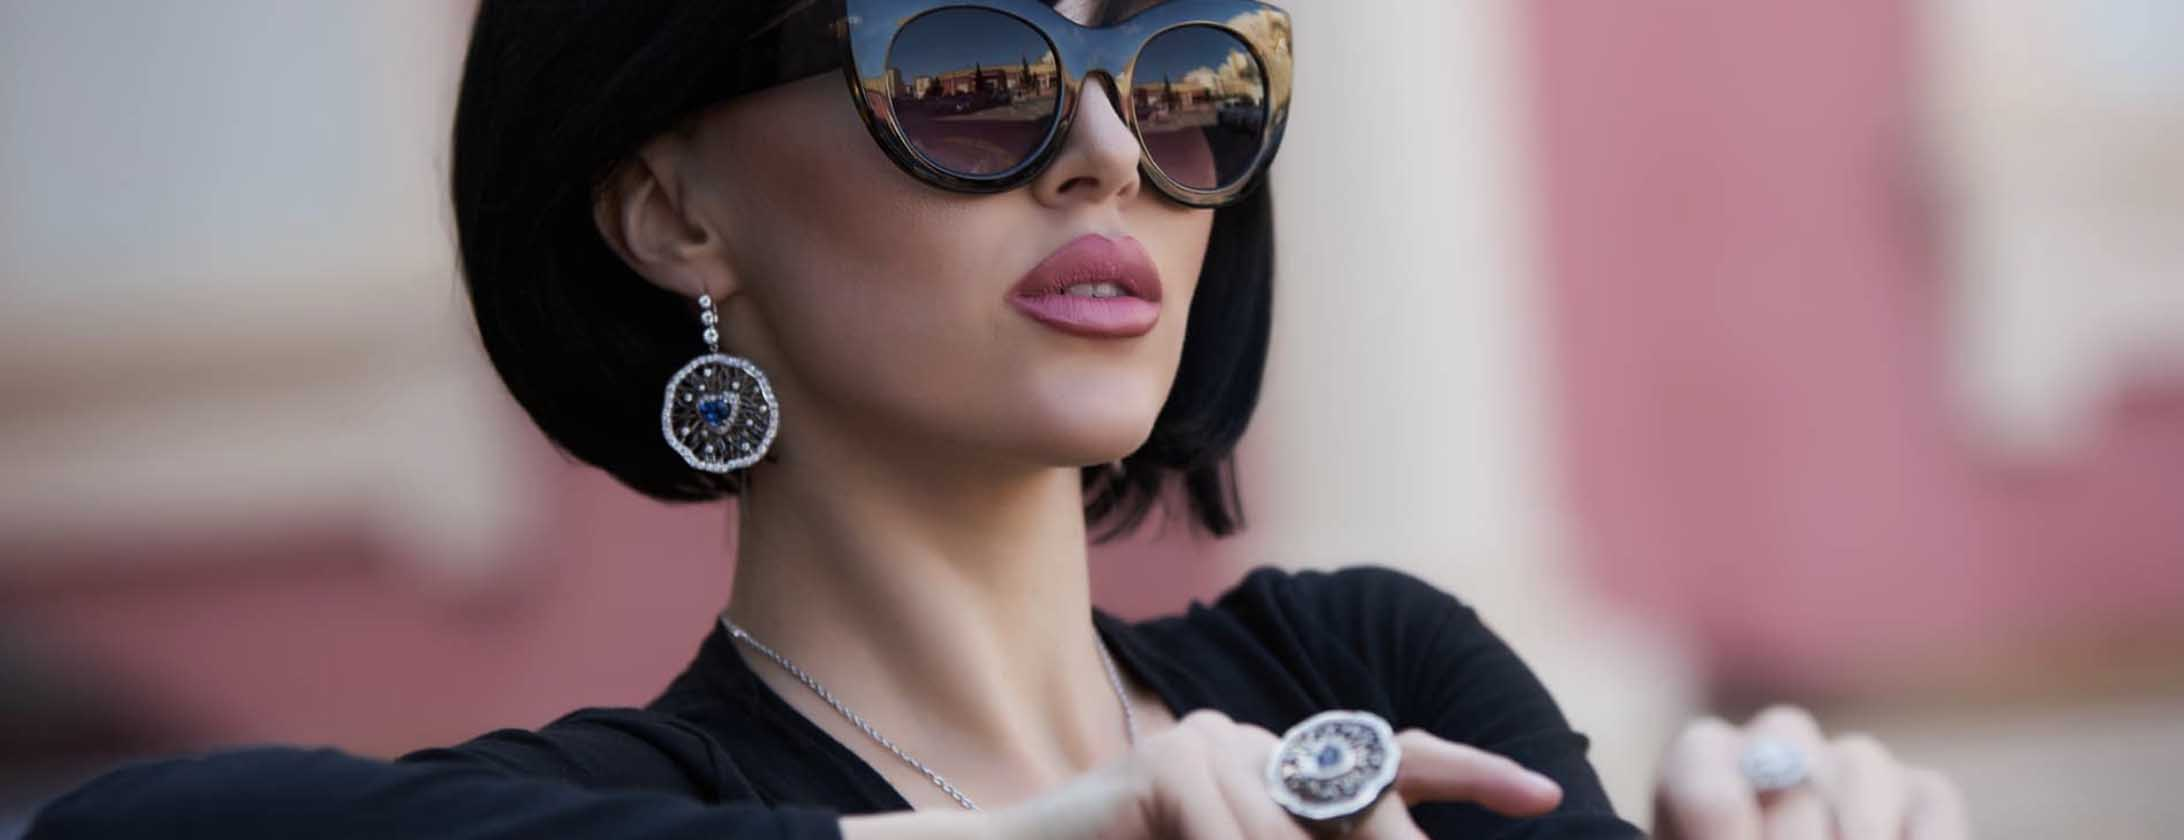 Covett luxury jewellery co-ownership and subscription